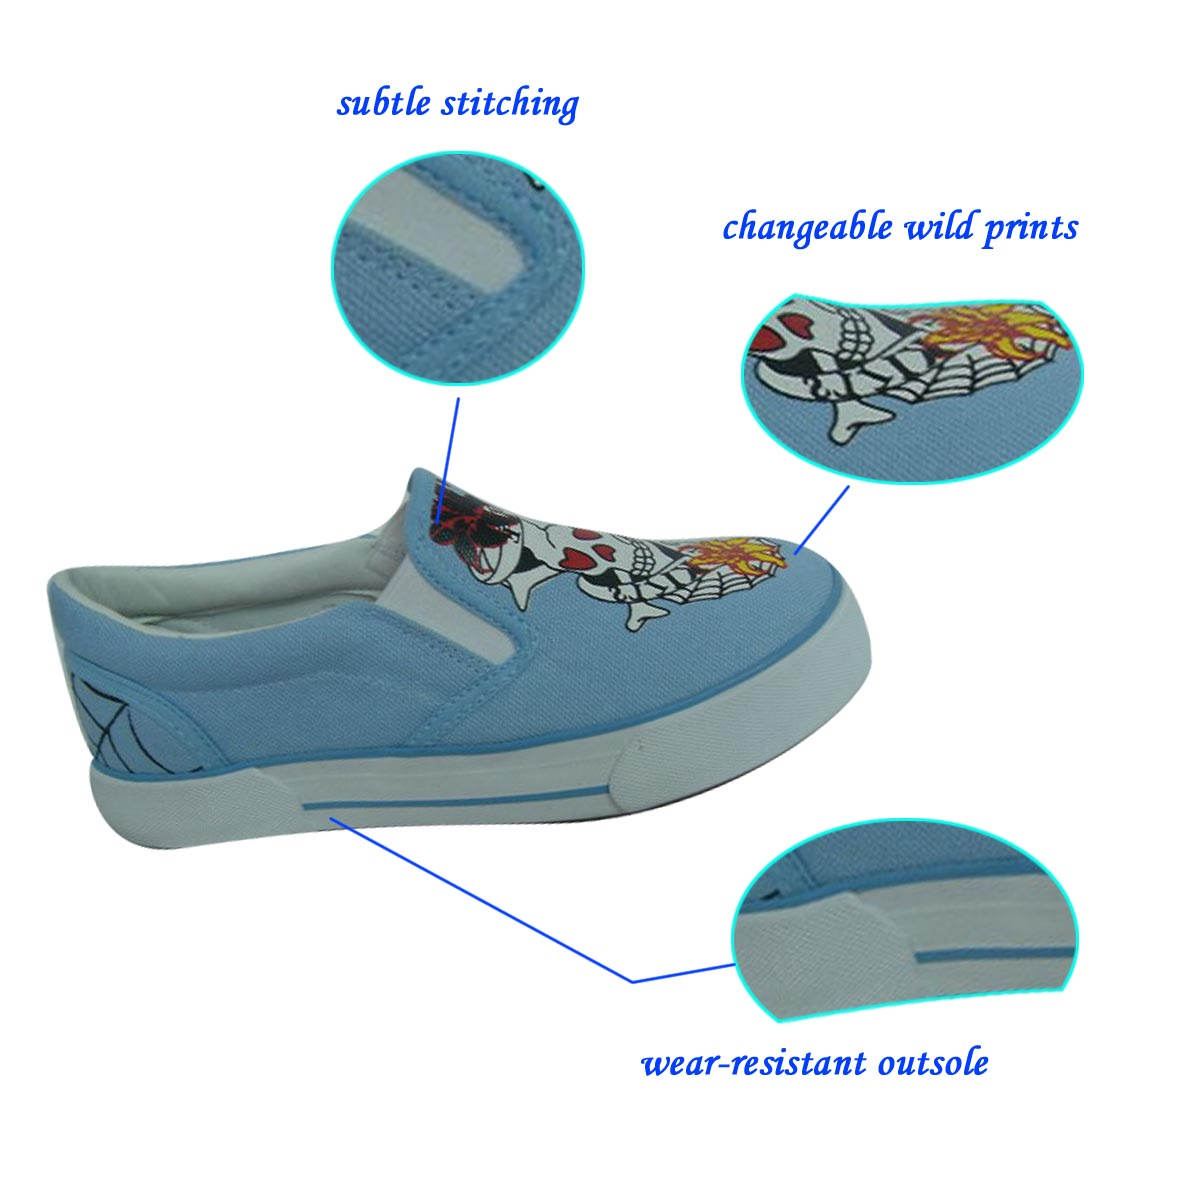 2018 Fashionable Printed Blue Unisex Slip-on Casual Kid Vulcanized Shoe from China Jinjiang with high quality and low price